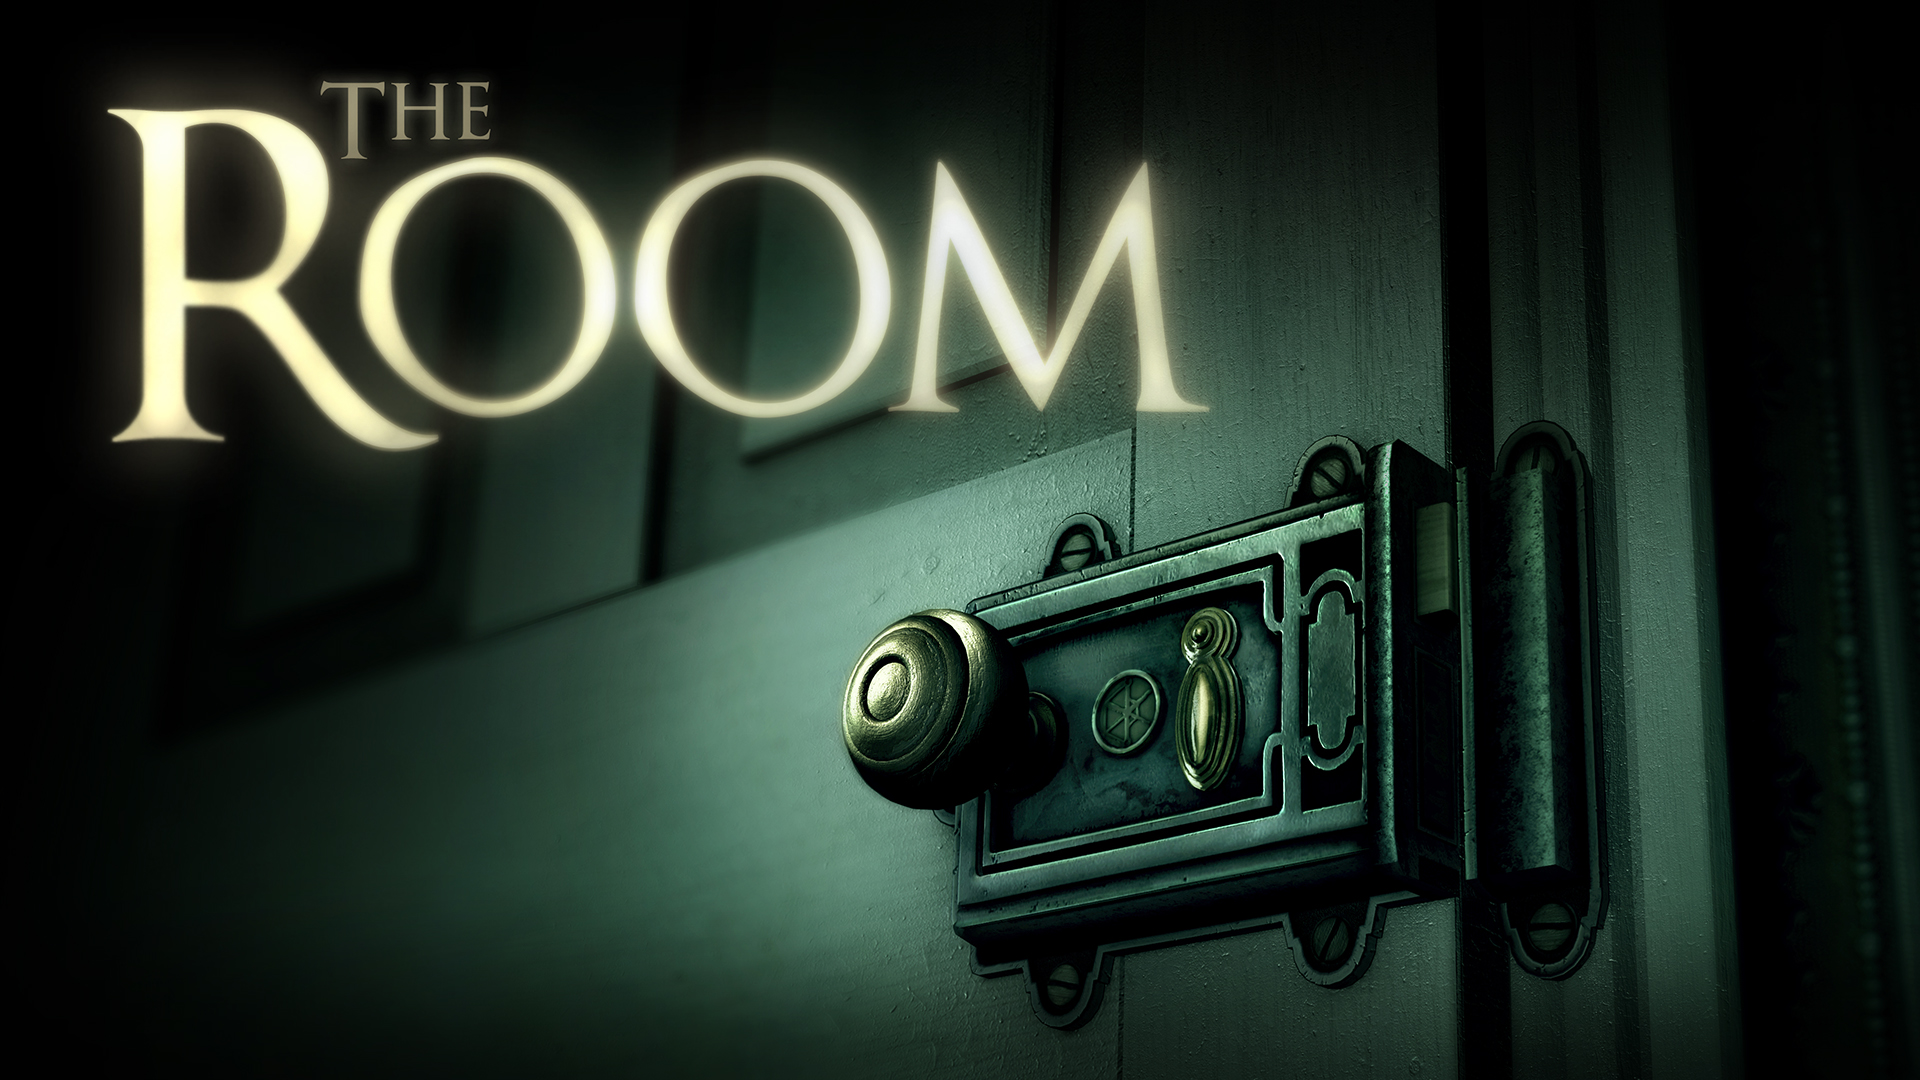 The incredible puzzler The Room heads to Nintendo Switch this month